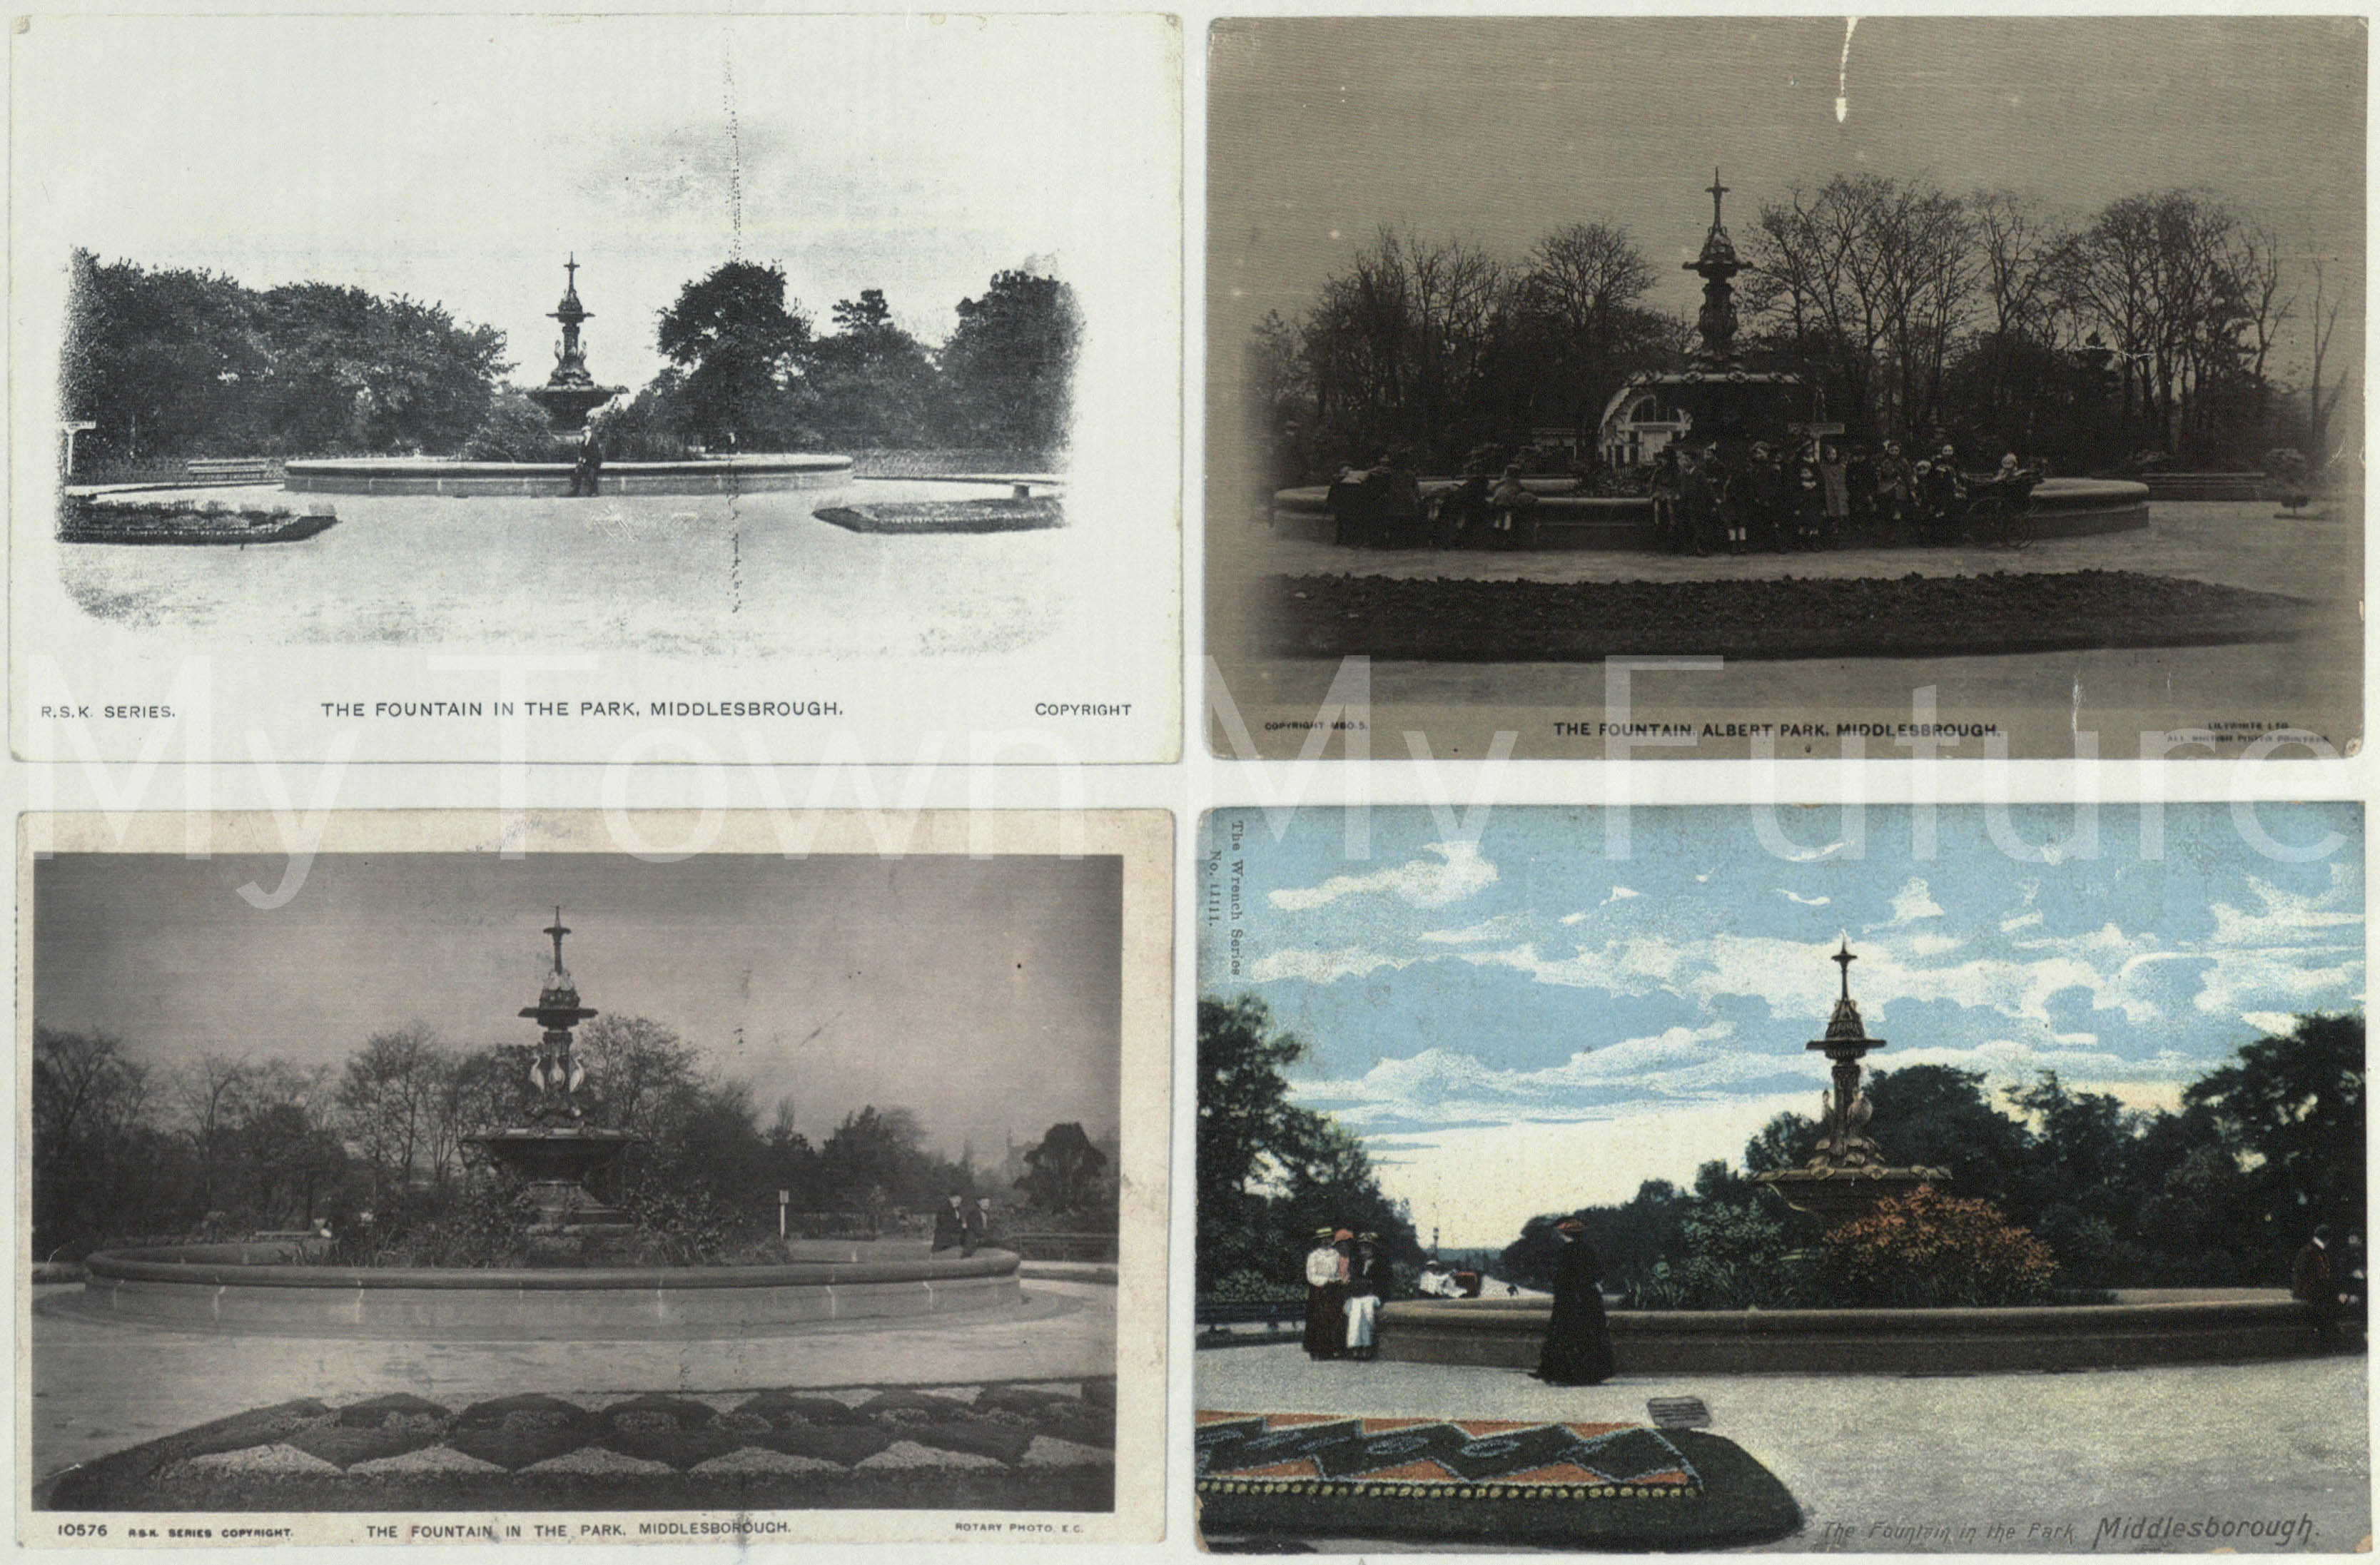 Albert Park - Four Fountain Images, left 2 RSk Series, top right Lilywhites Ltd